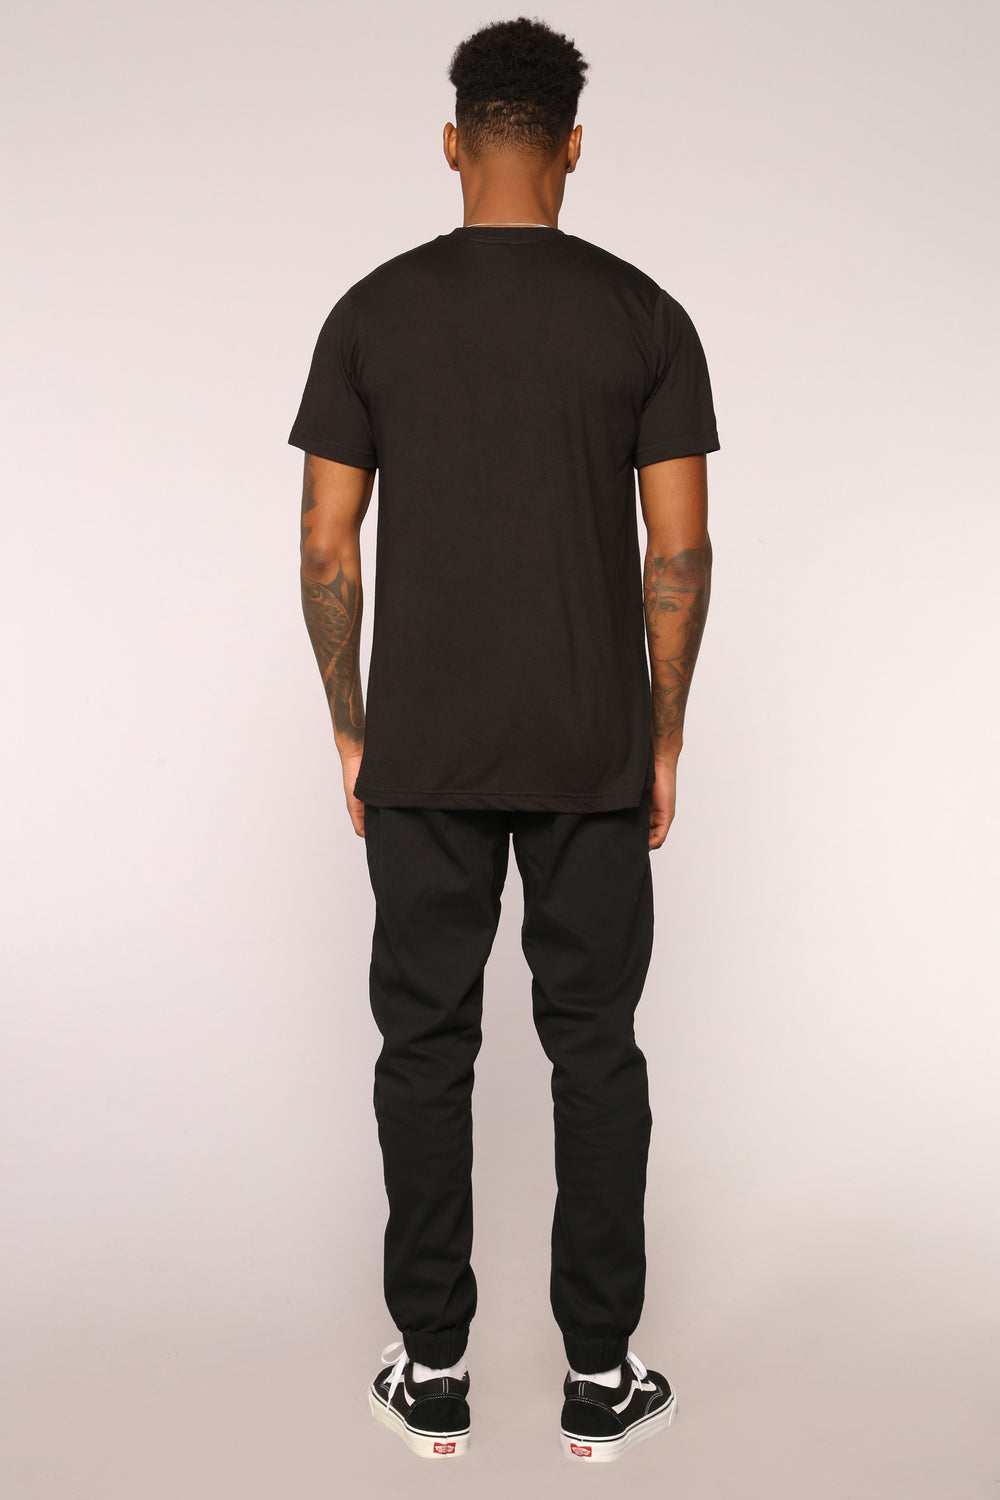 X Ray Short Sleeve Tee - Black